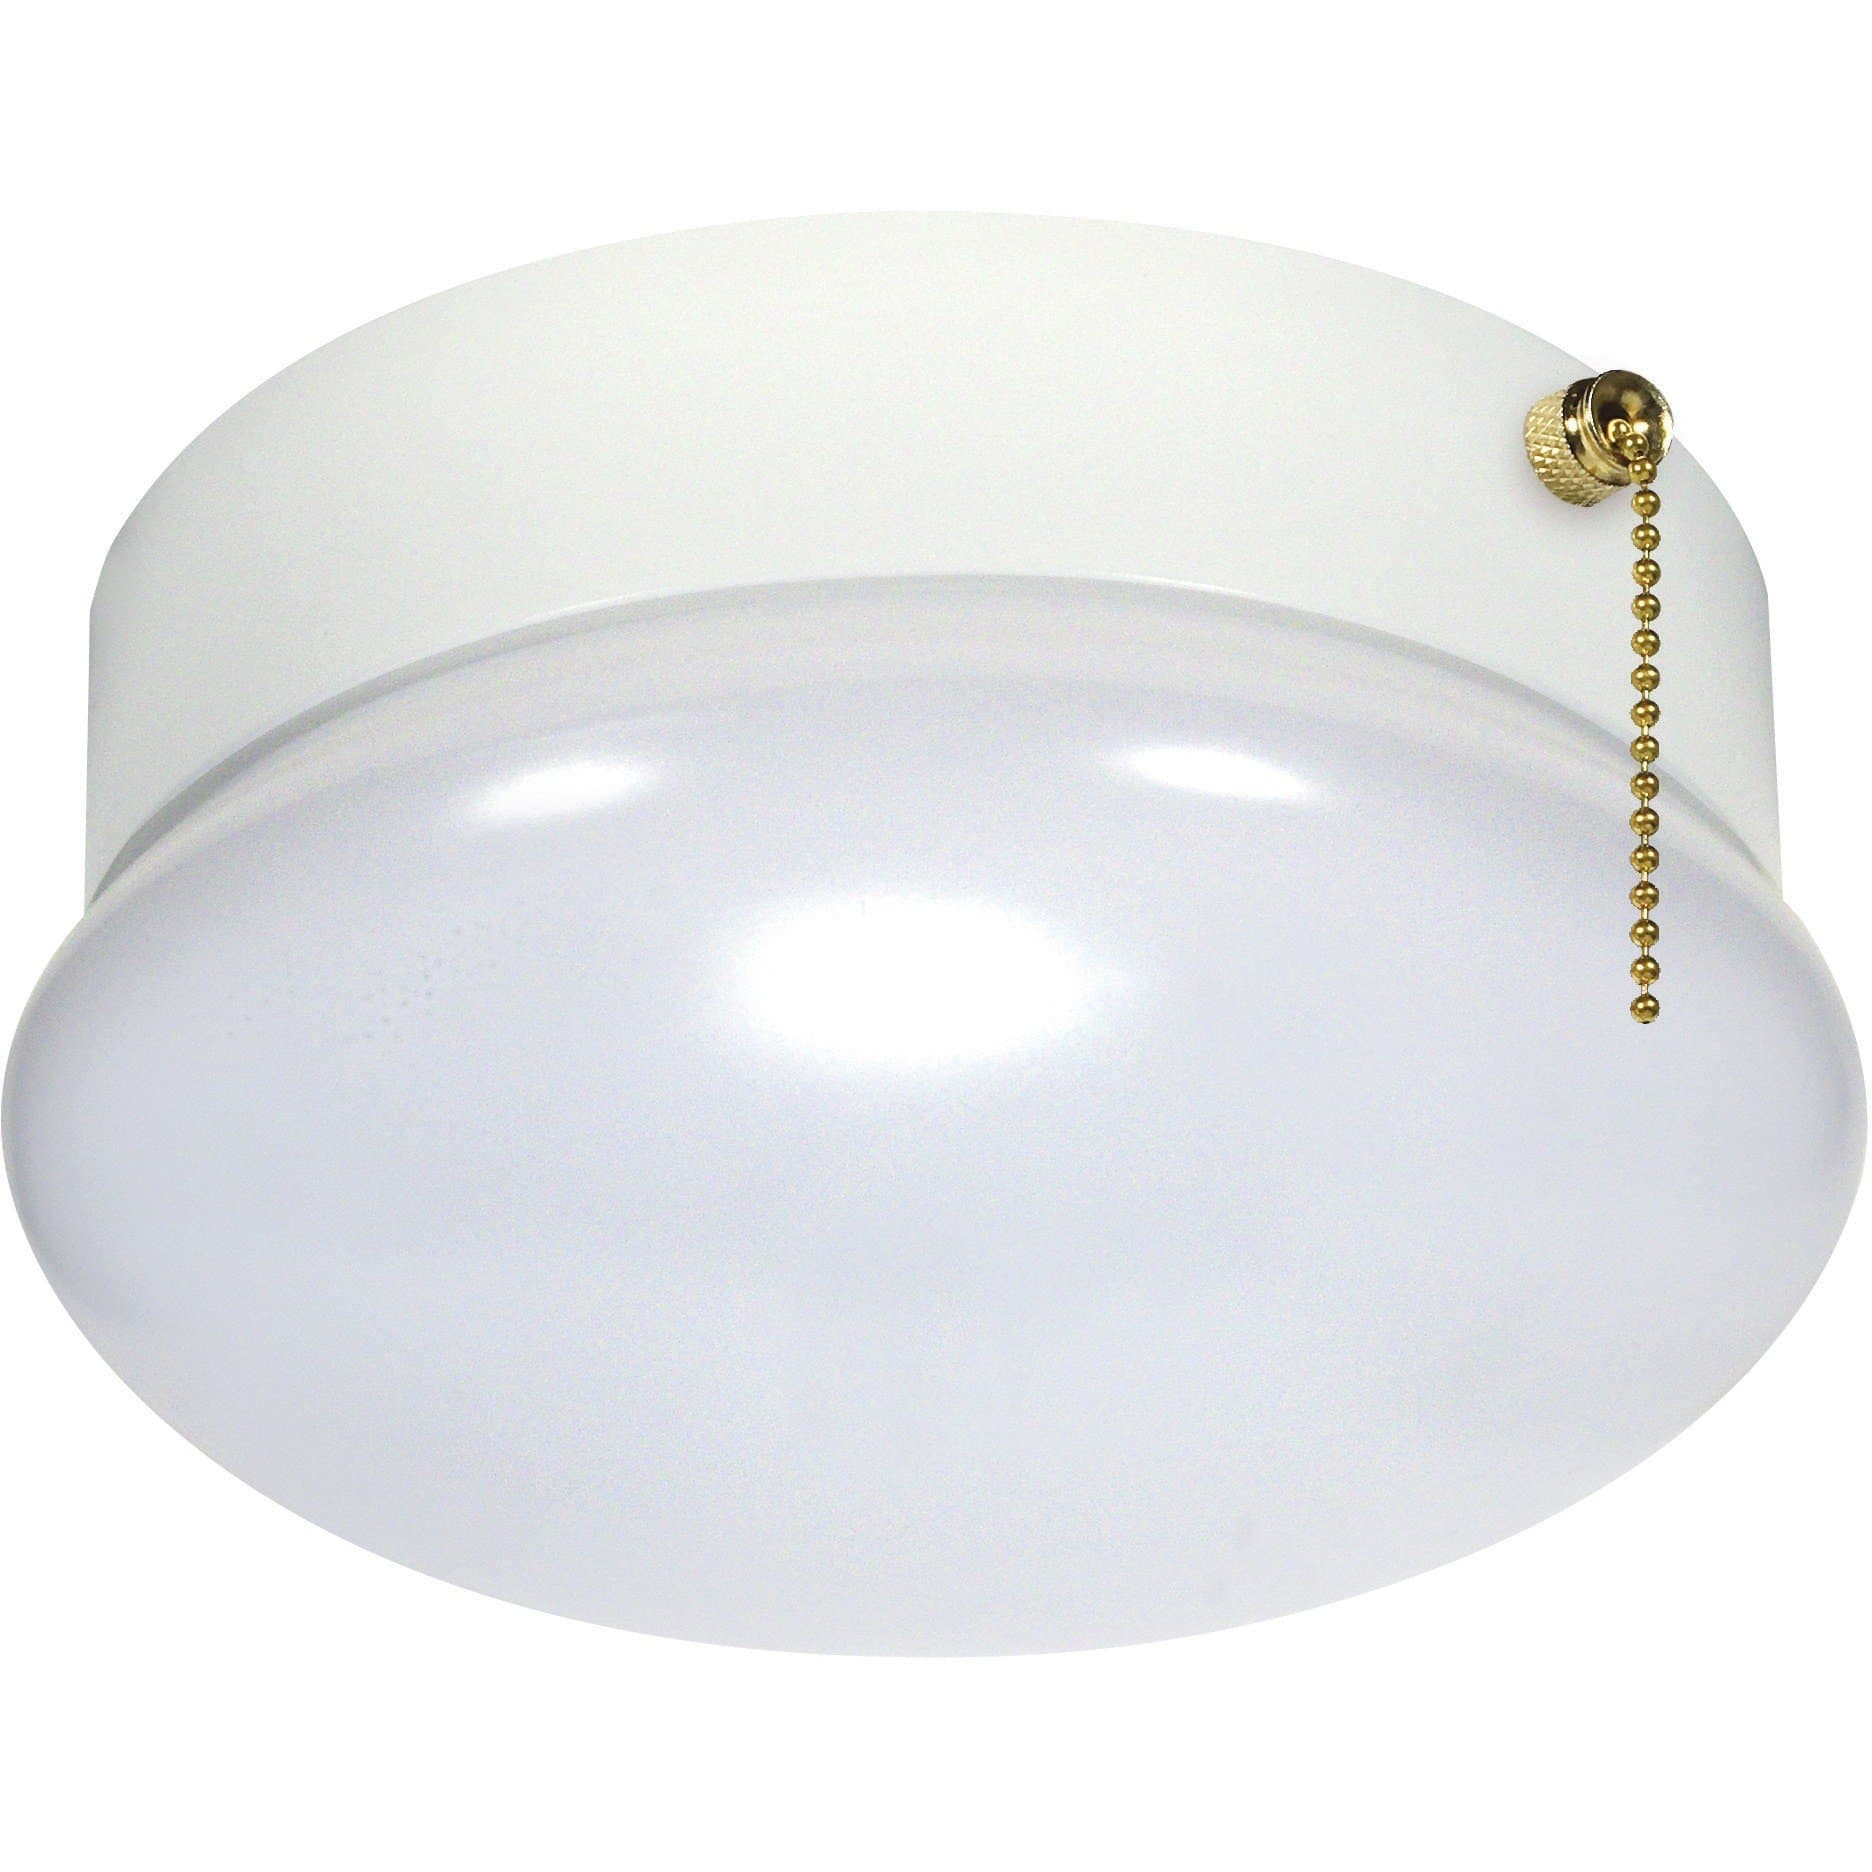 Nuvo 62-965 LED 13W 7 Inch Flush Mount Light with Pull Chain - 3000K ...